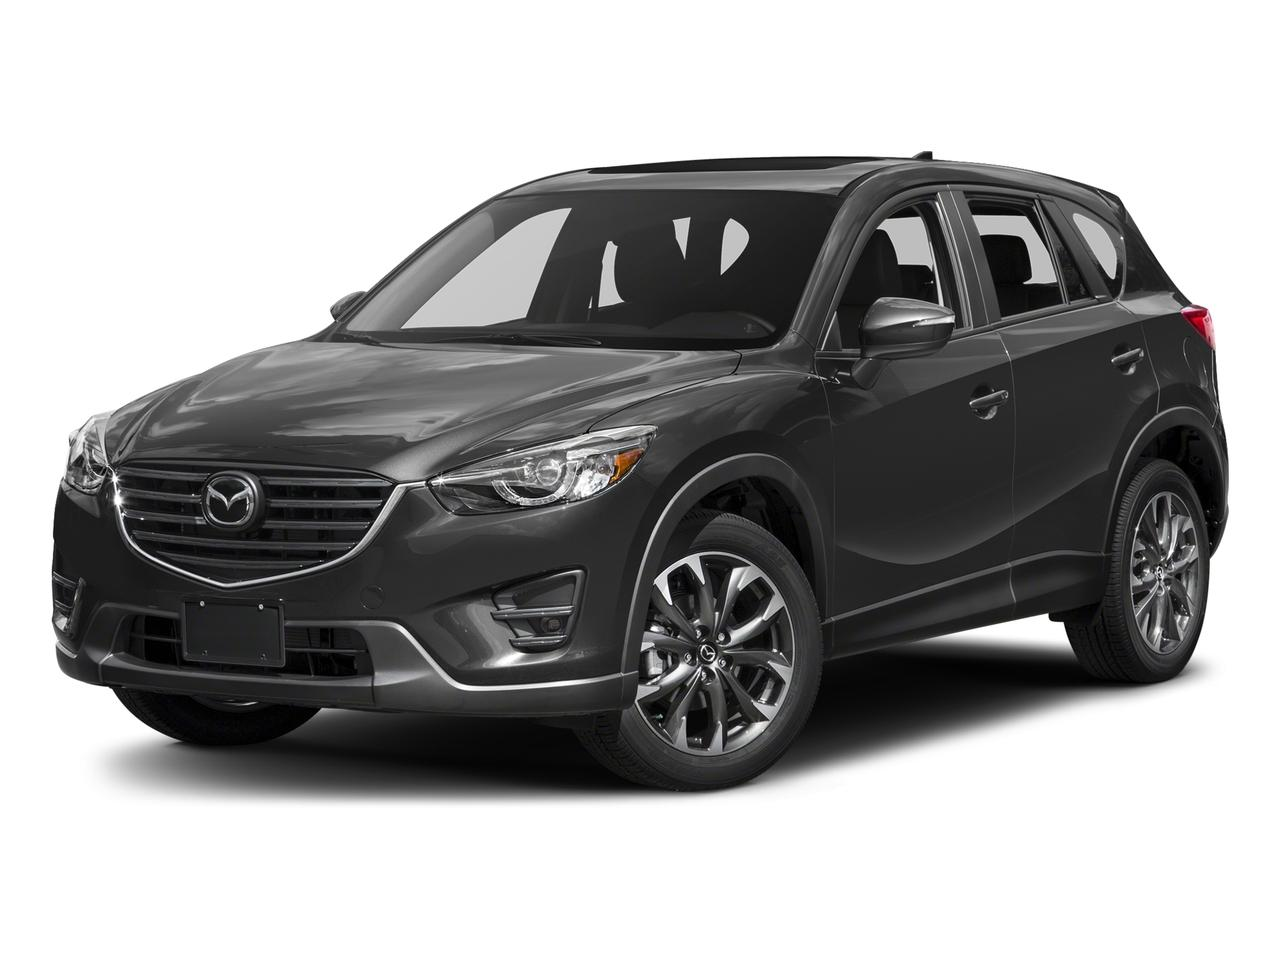 2016 Mazda CX-5 Vehicle Photo in Greensboro, NC 27405